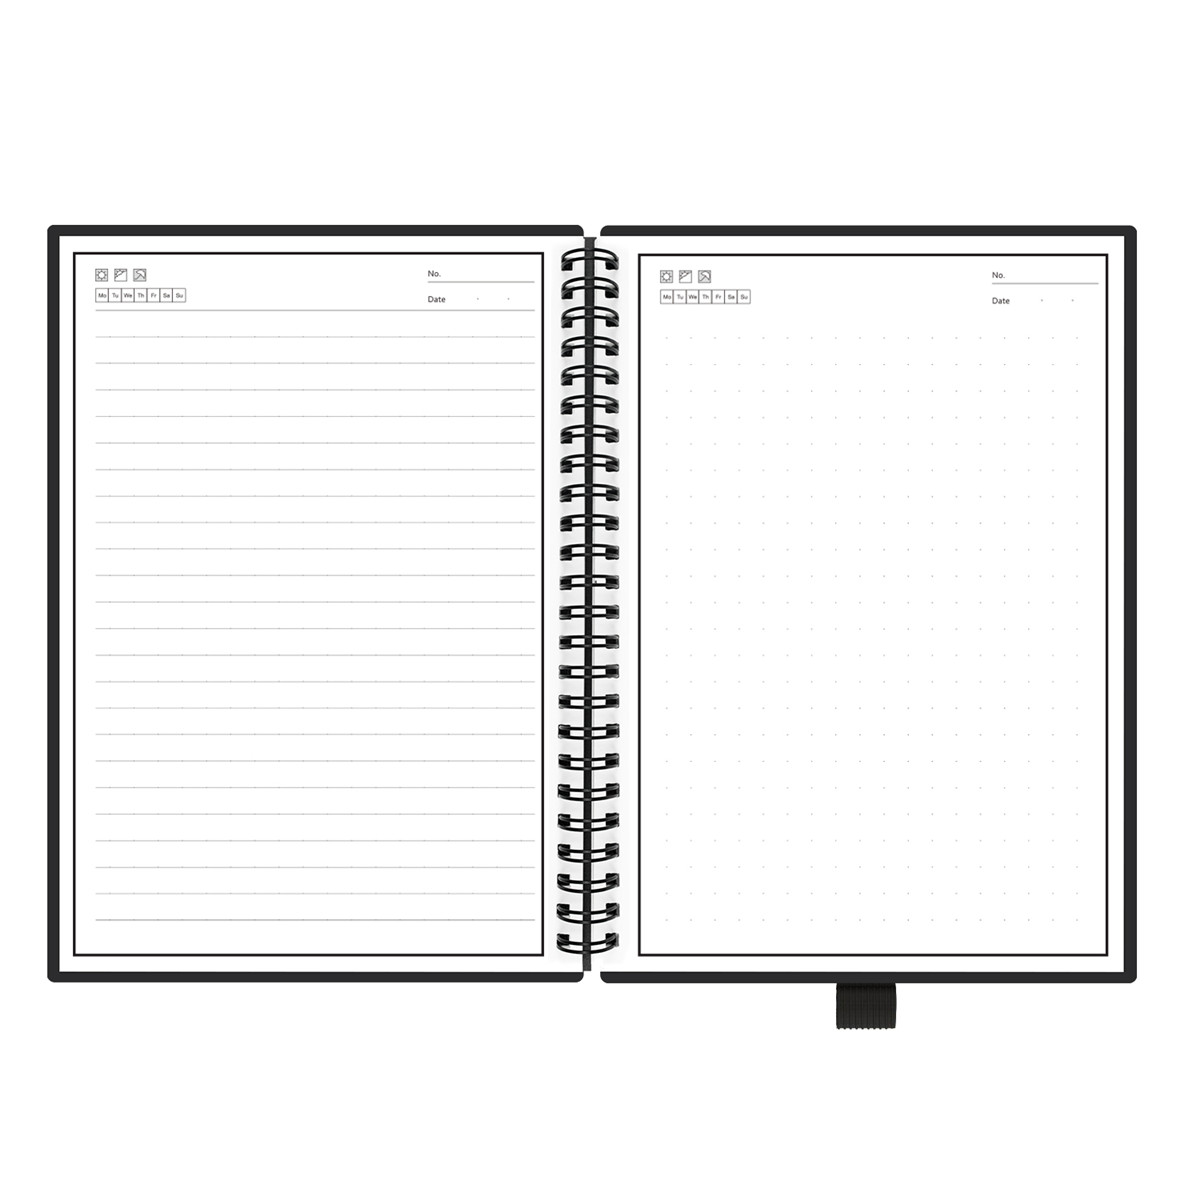 NEW Smart Reusable Erasable <font><b>Notebook</b></font> Paper Microwave Wave Cloud Erase Notepad Note Pad Lined With Pen image